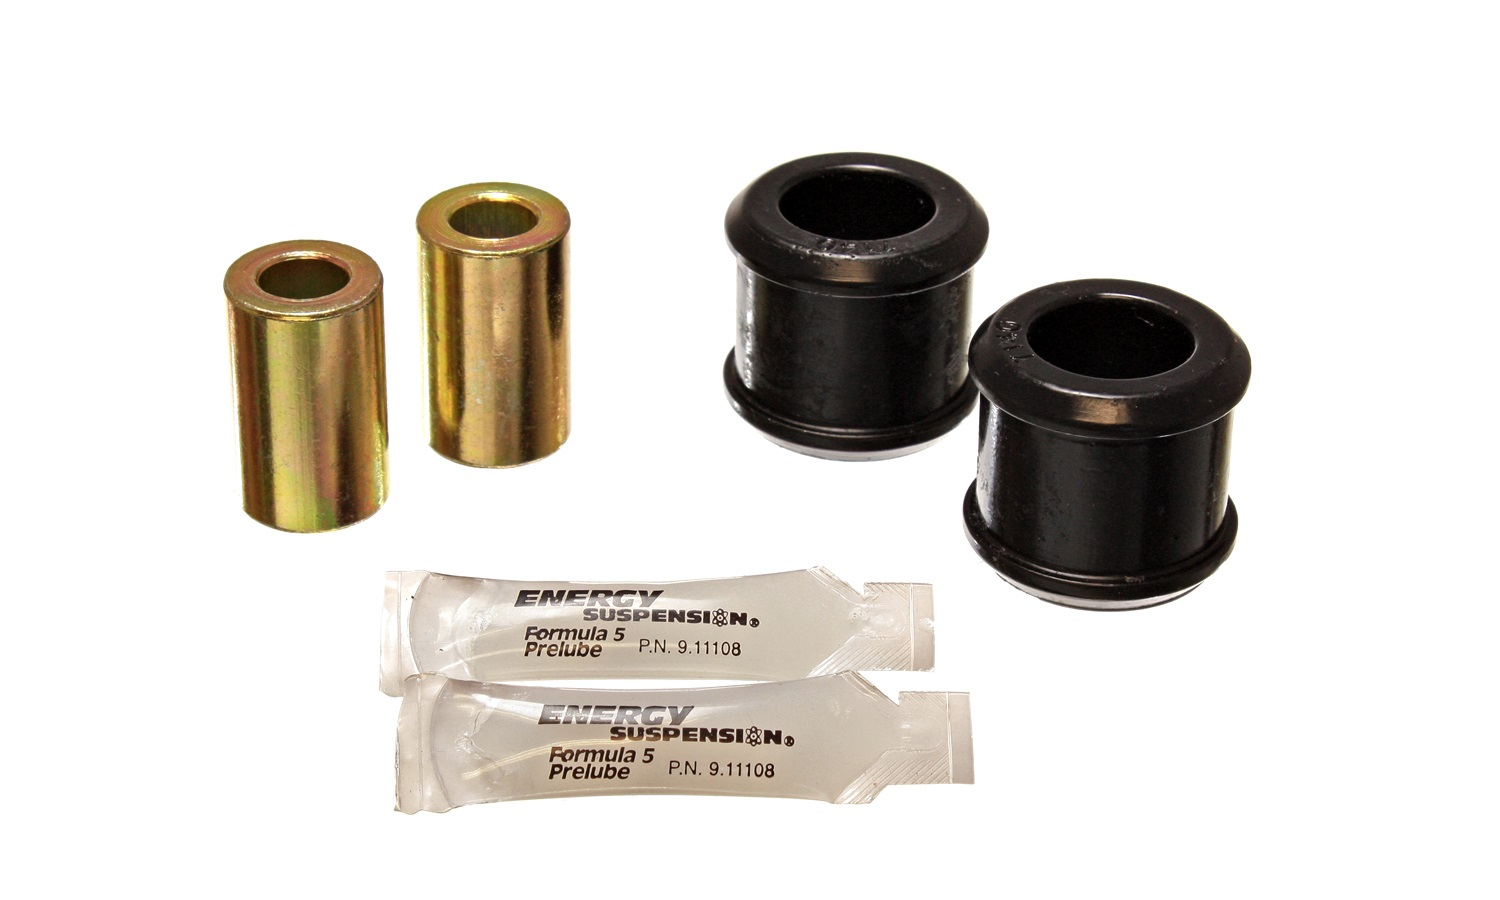 Energy Suspension Suspension 5.7116G Track Rod Bushing Set  Black  Front  Performance Polyurethane at Sears.com